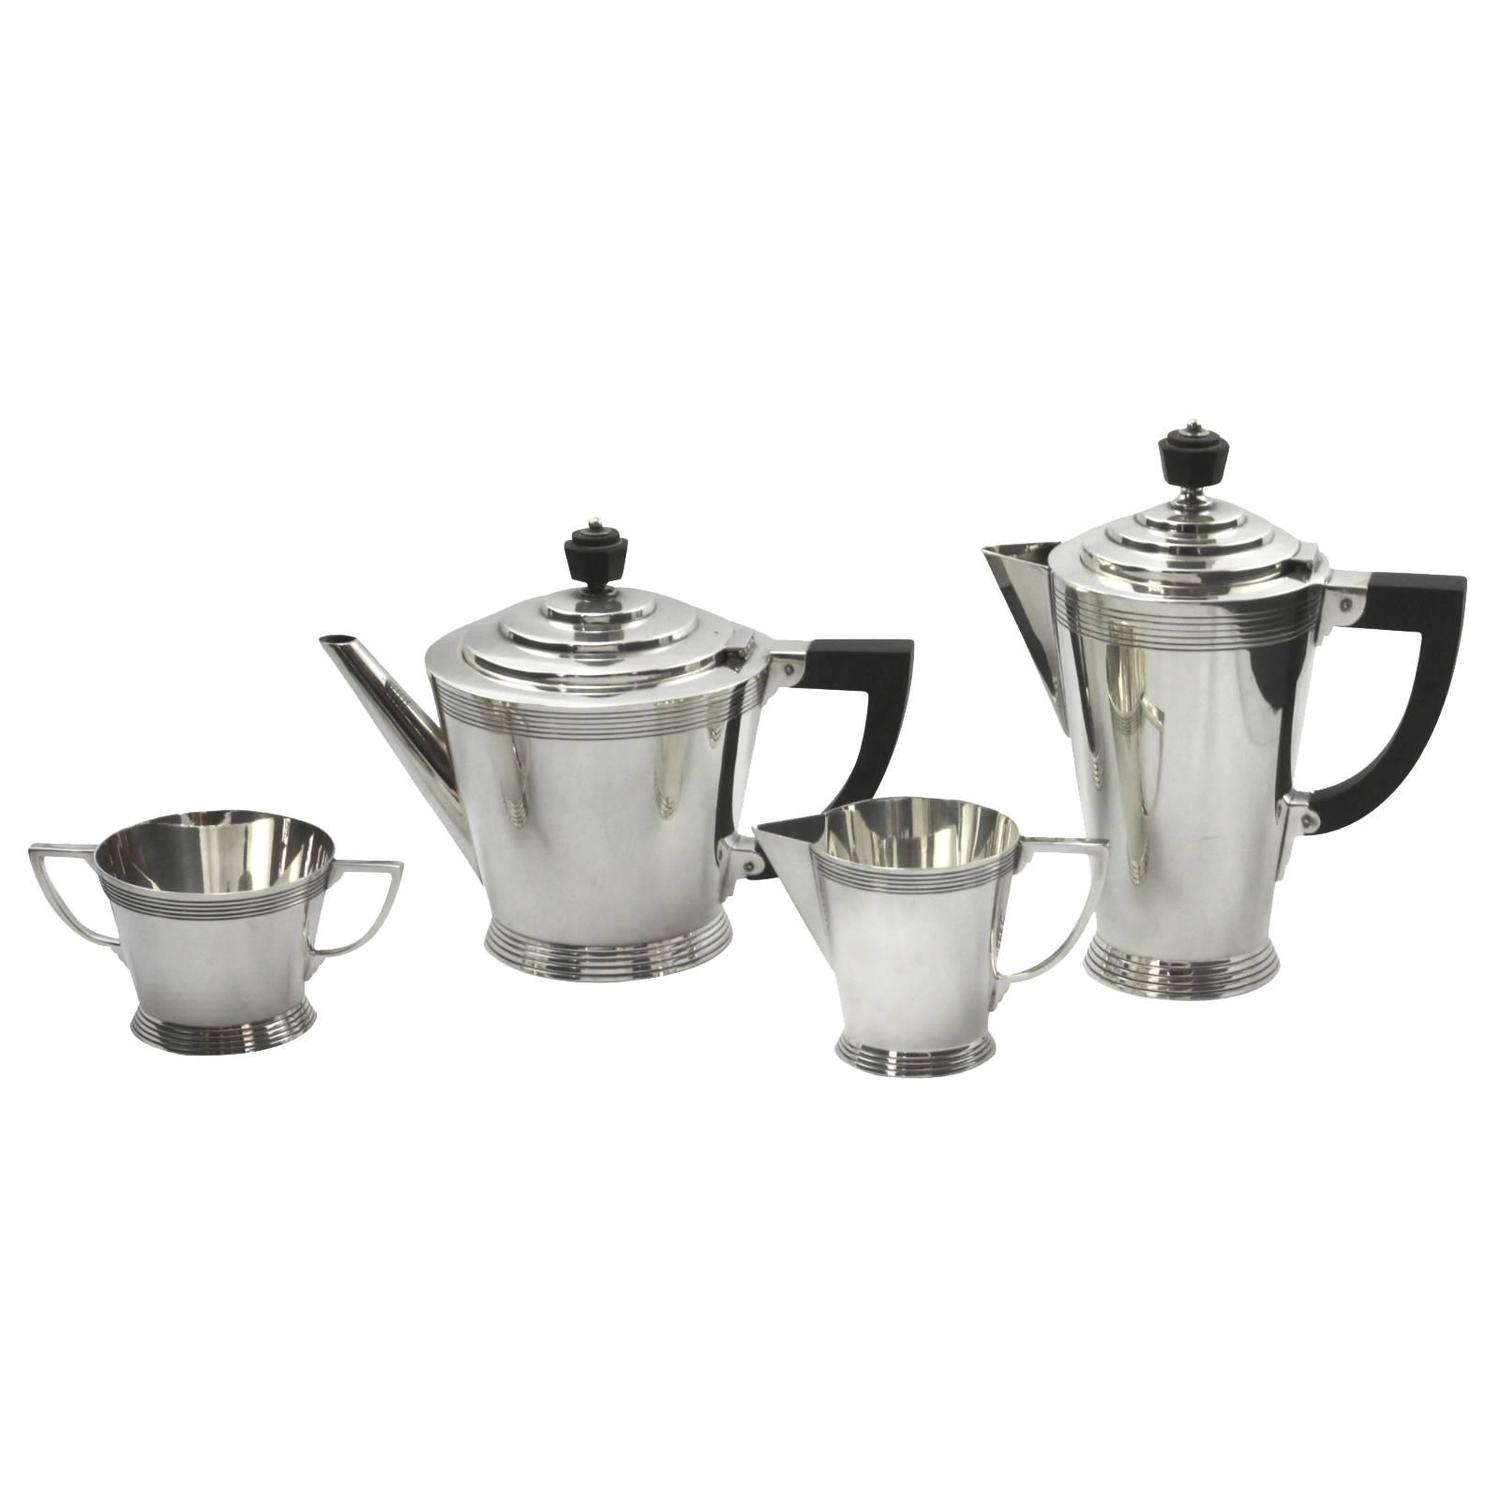 Four Piece Art Deco Silver Plate Tea Set By Keith Murray For Min And Webb At 1stdibs